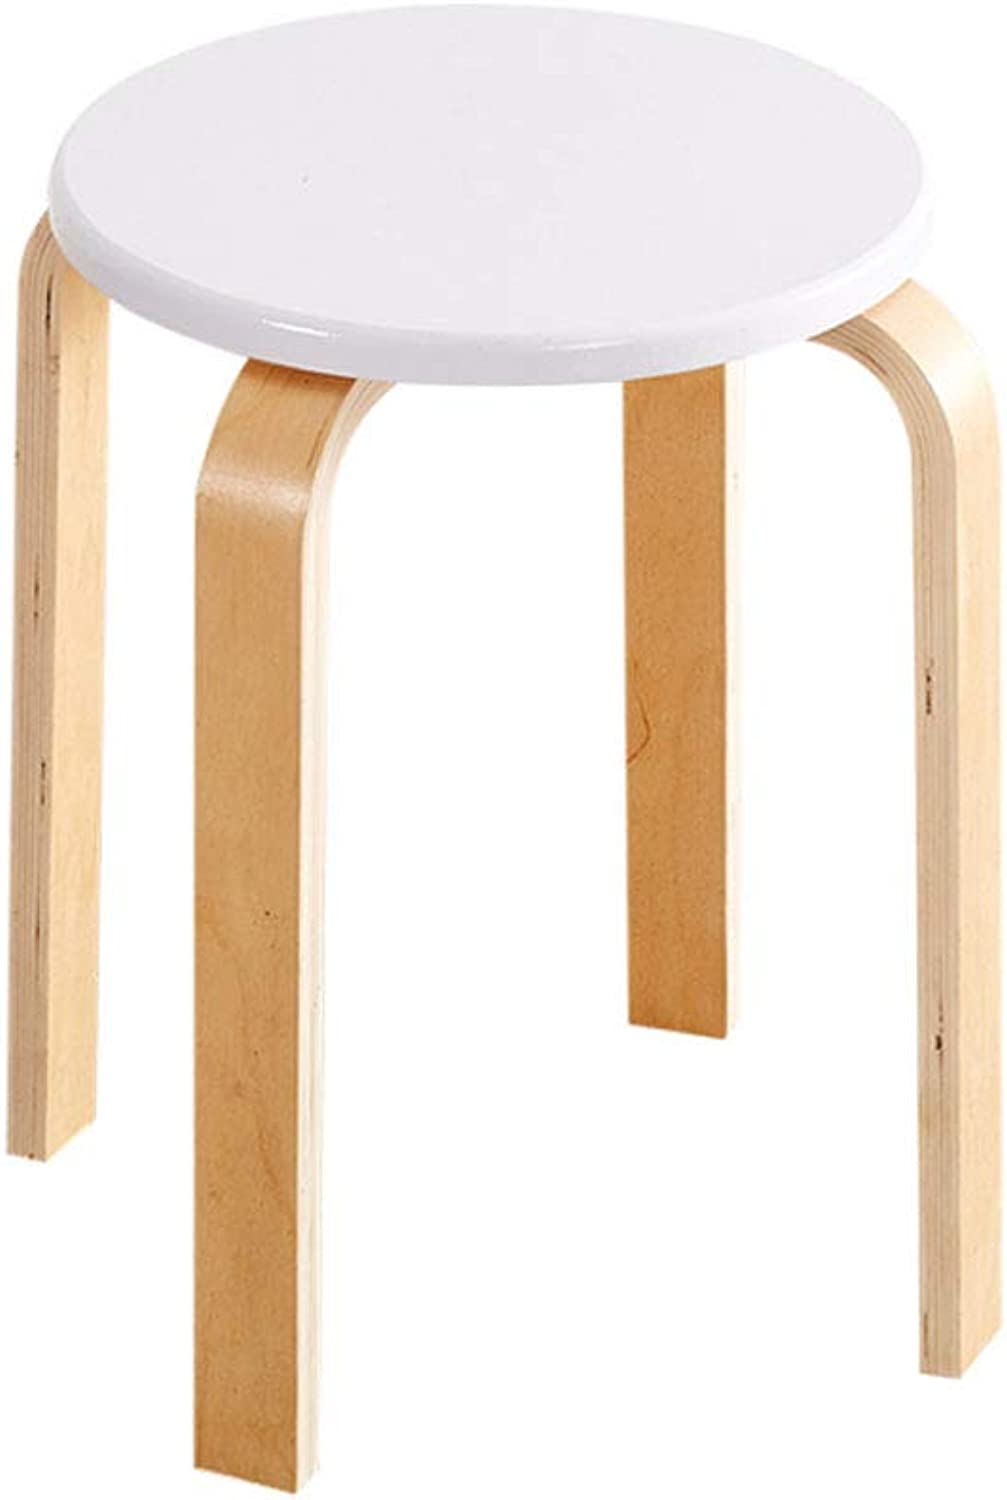 NJ STOOLS- Stool Solid Wood Living Room Small Chair Home Simple Modern Fabric Table Stool (color   White)